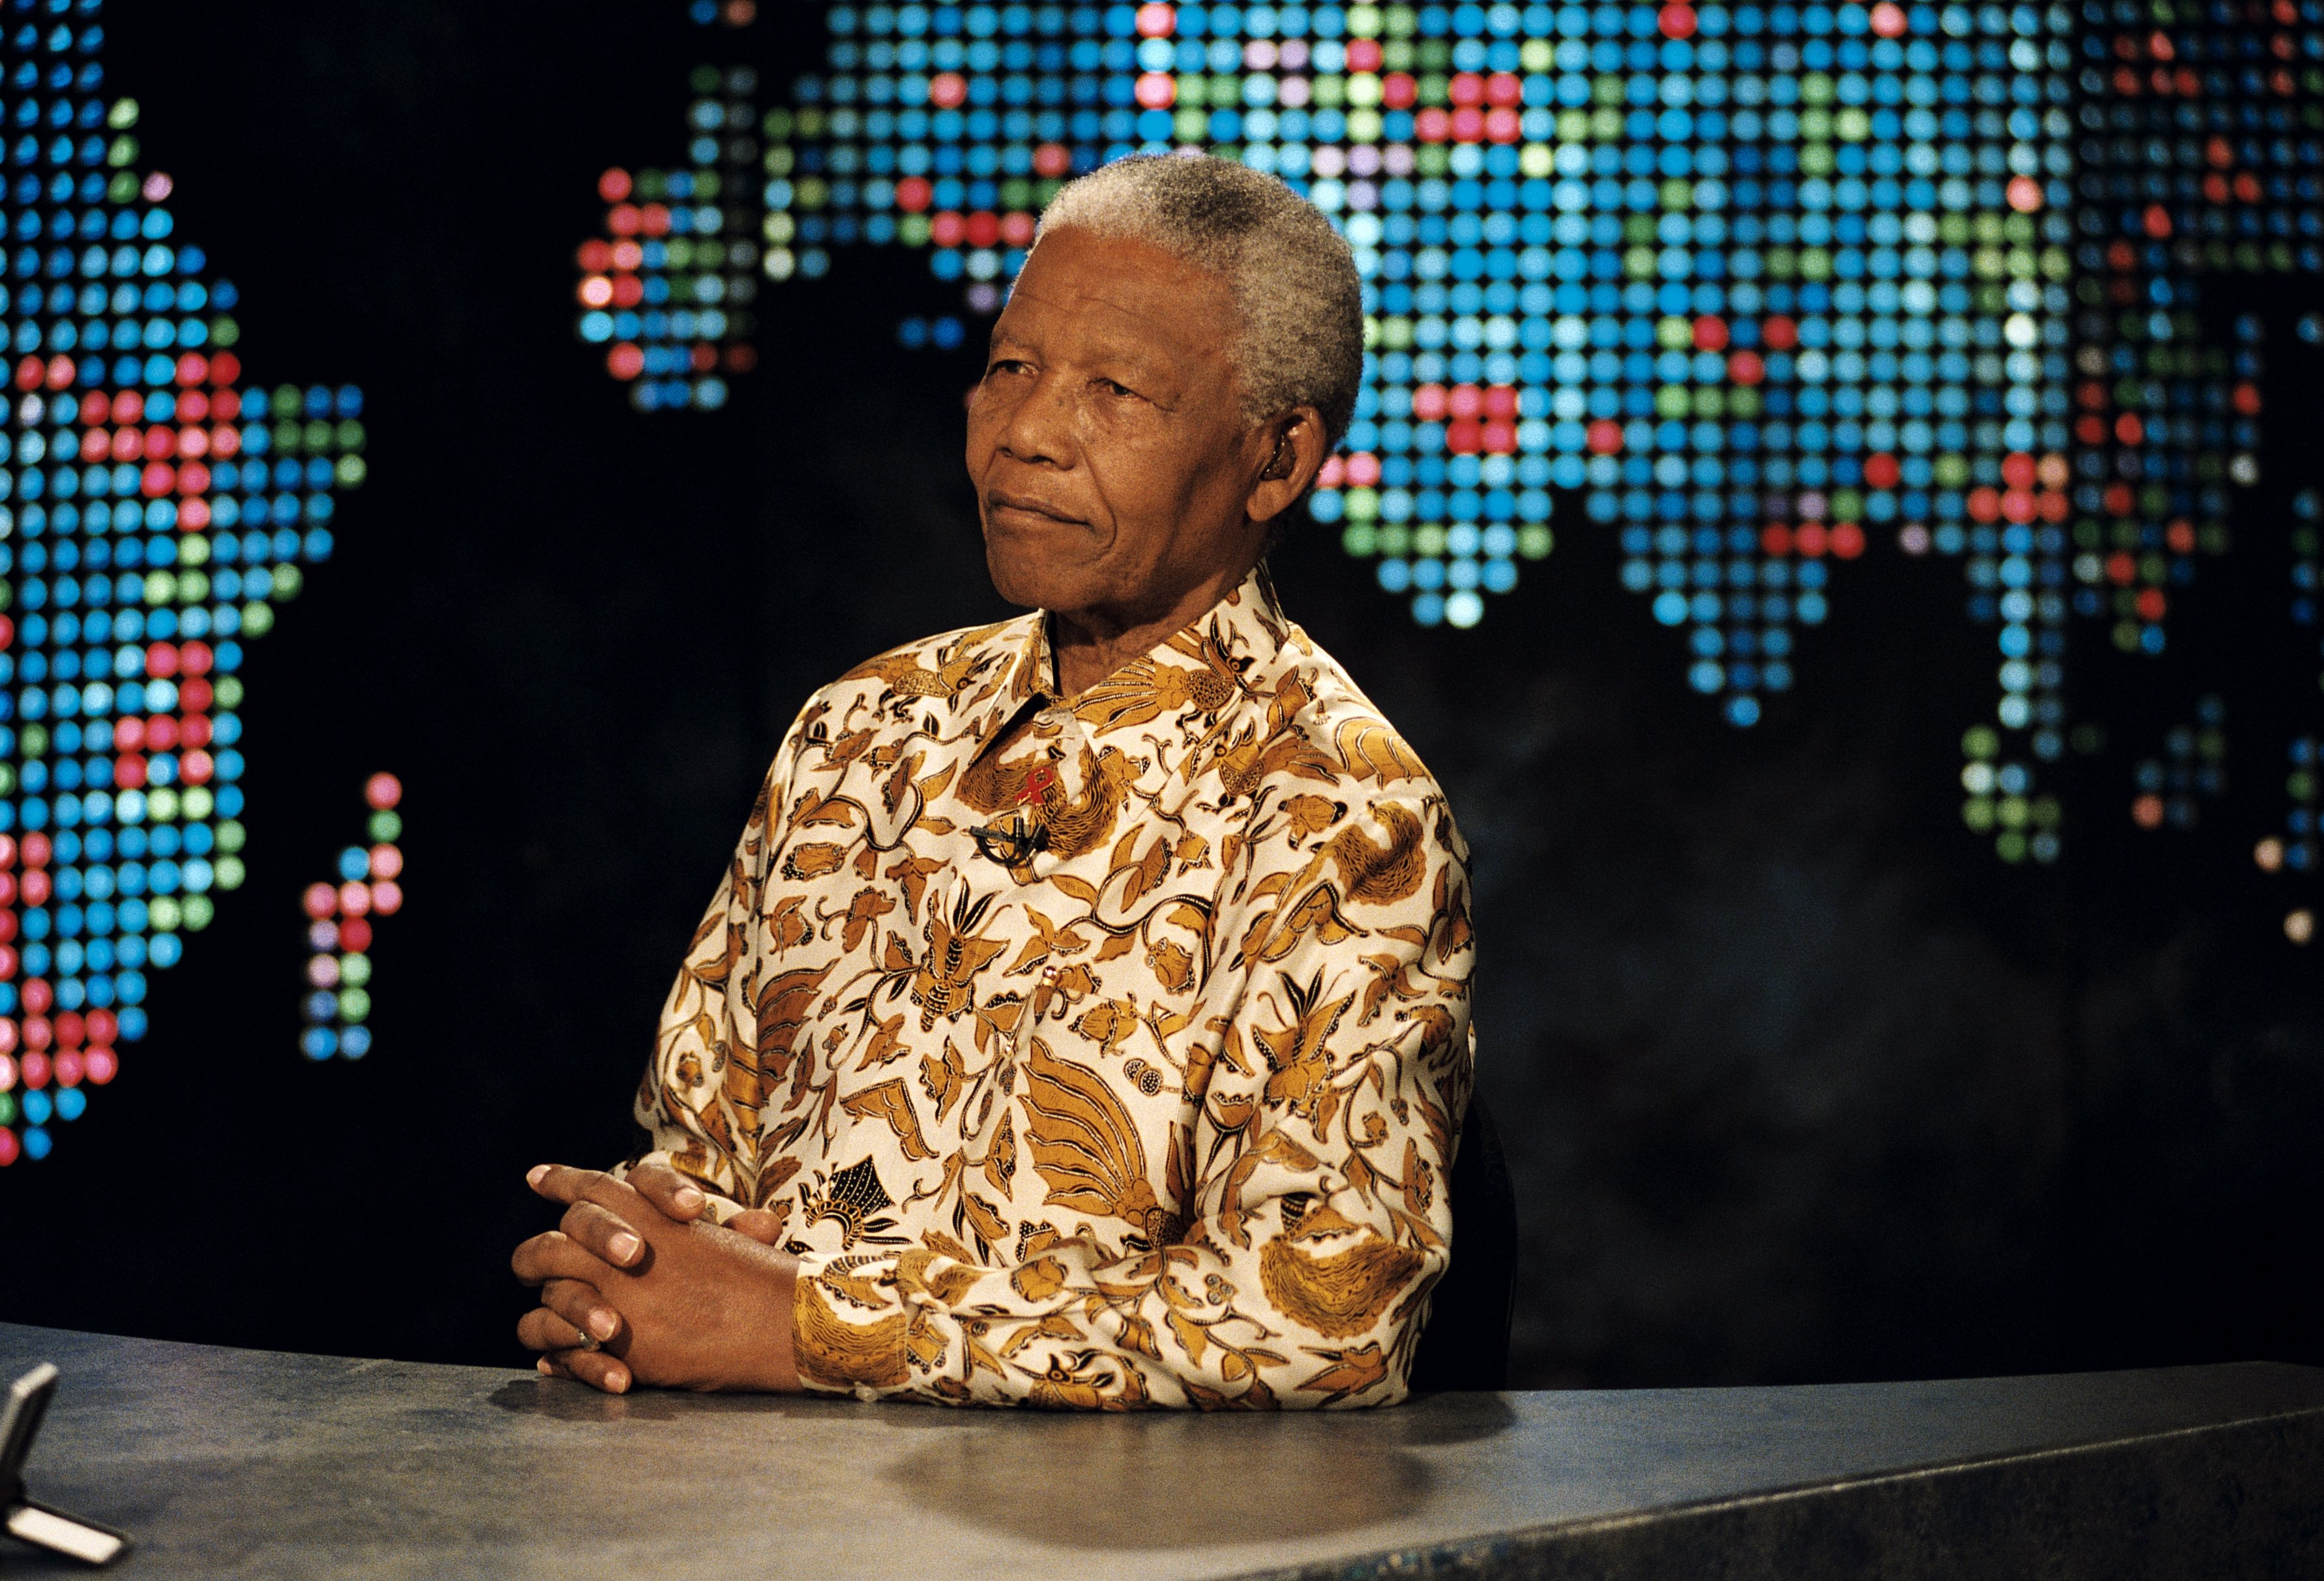 Reflections on Mandela